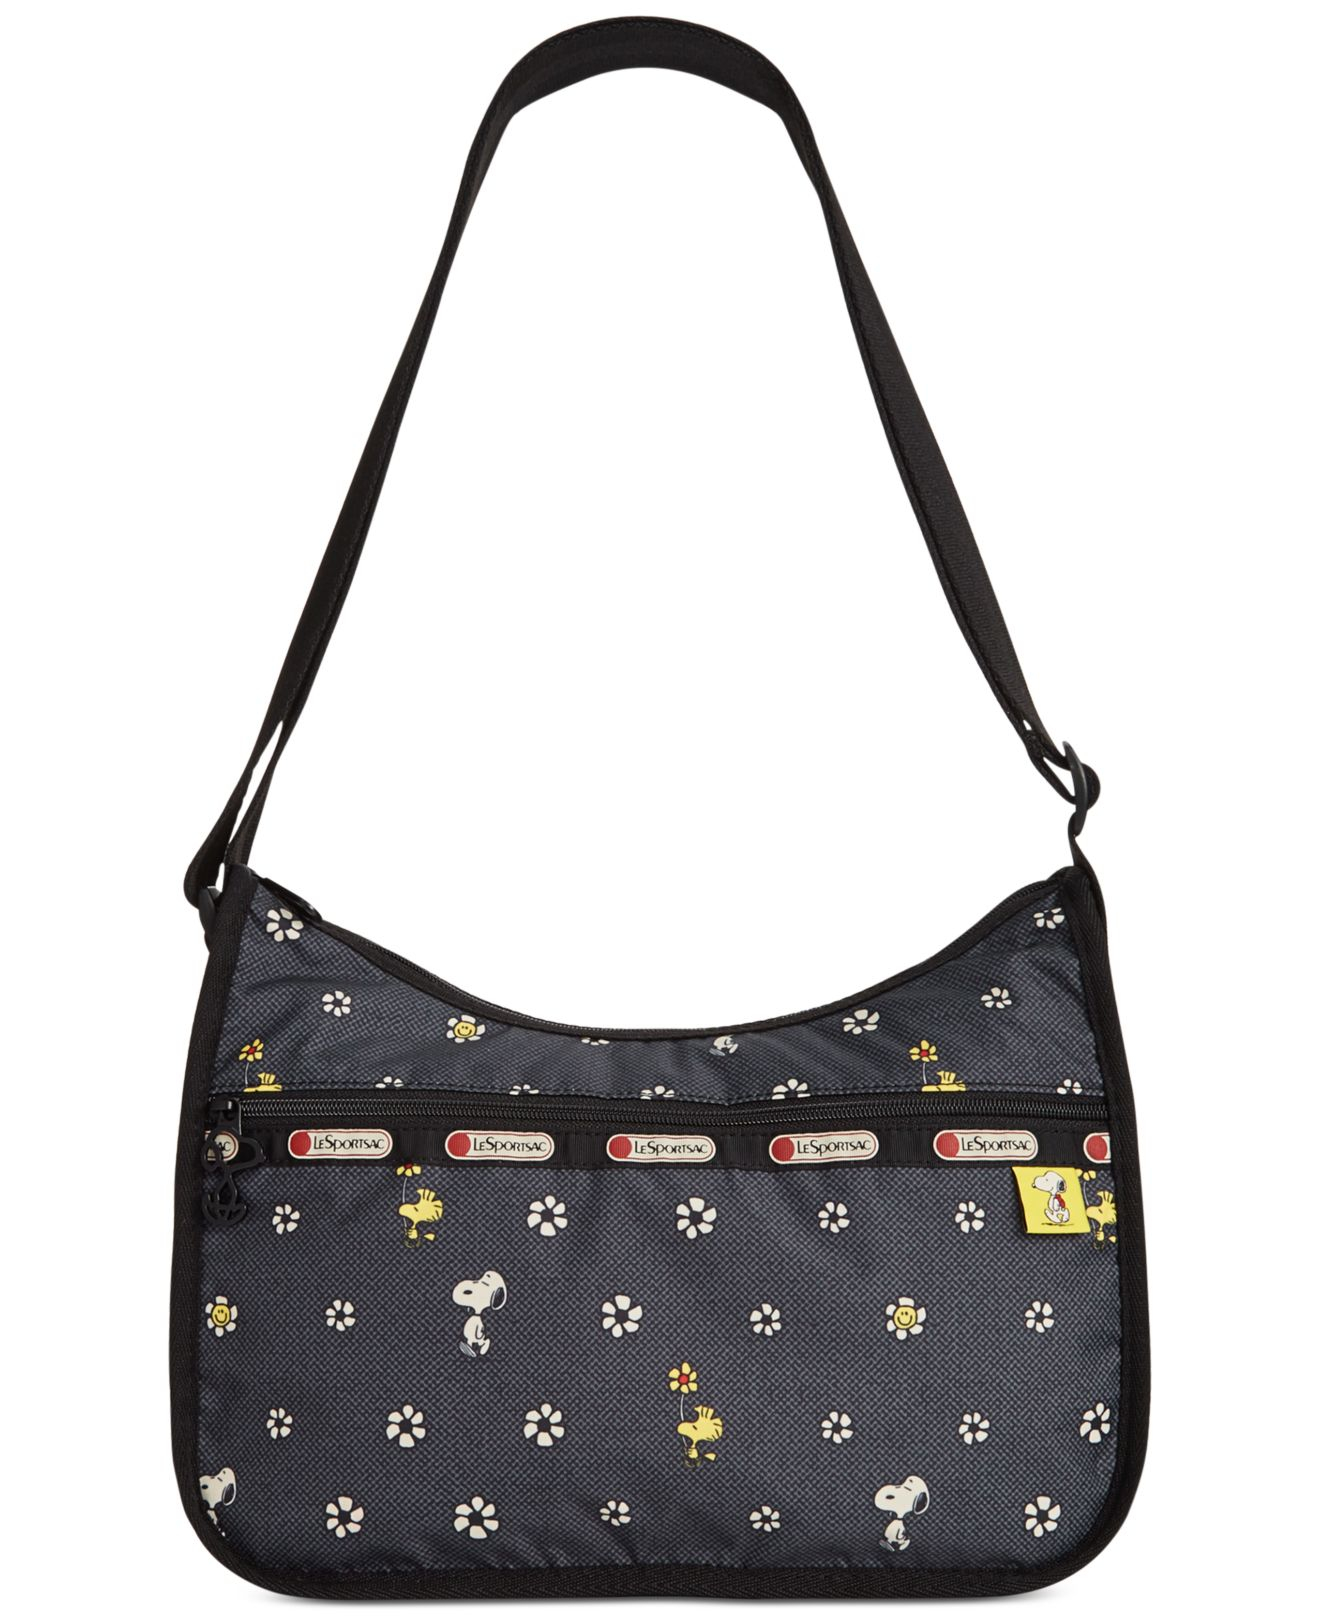 Designer betsey johnson collection for